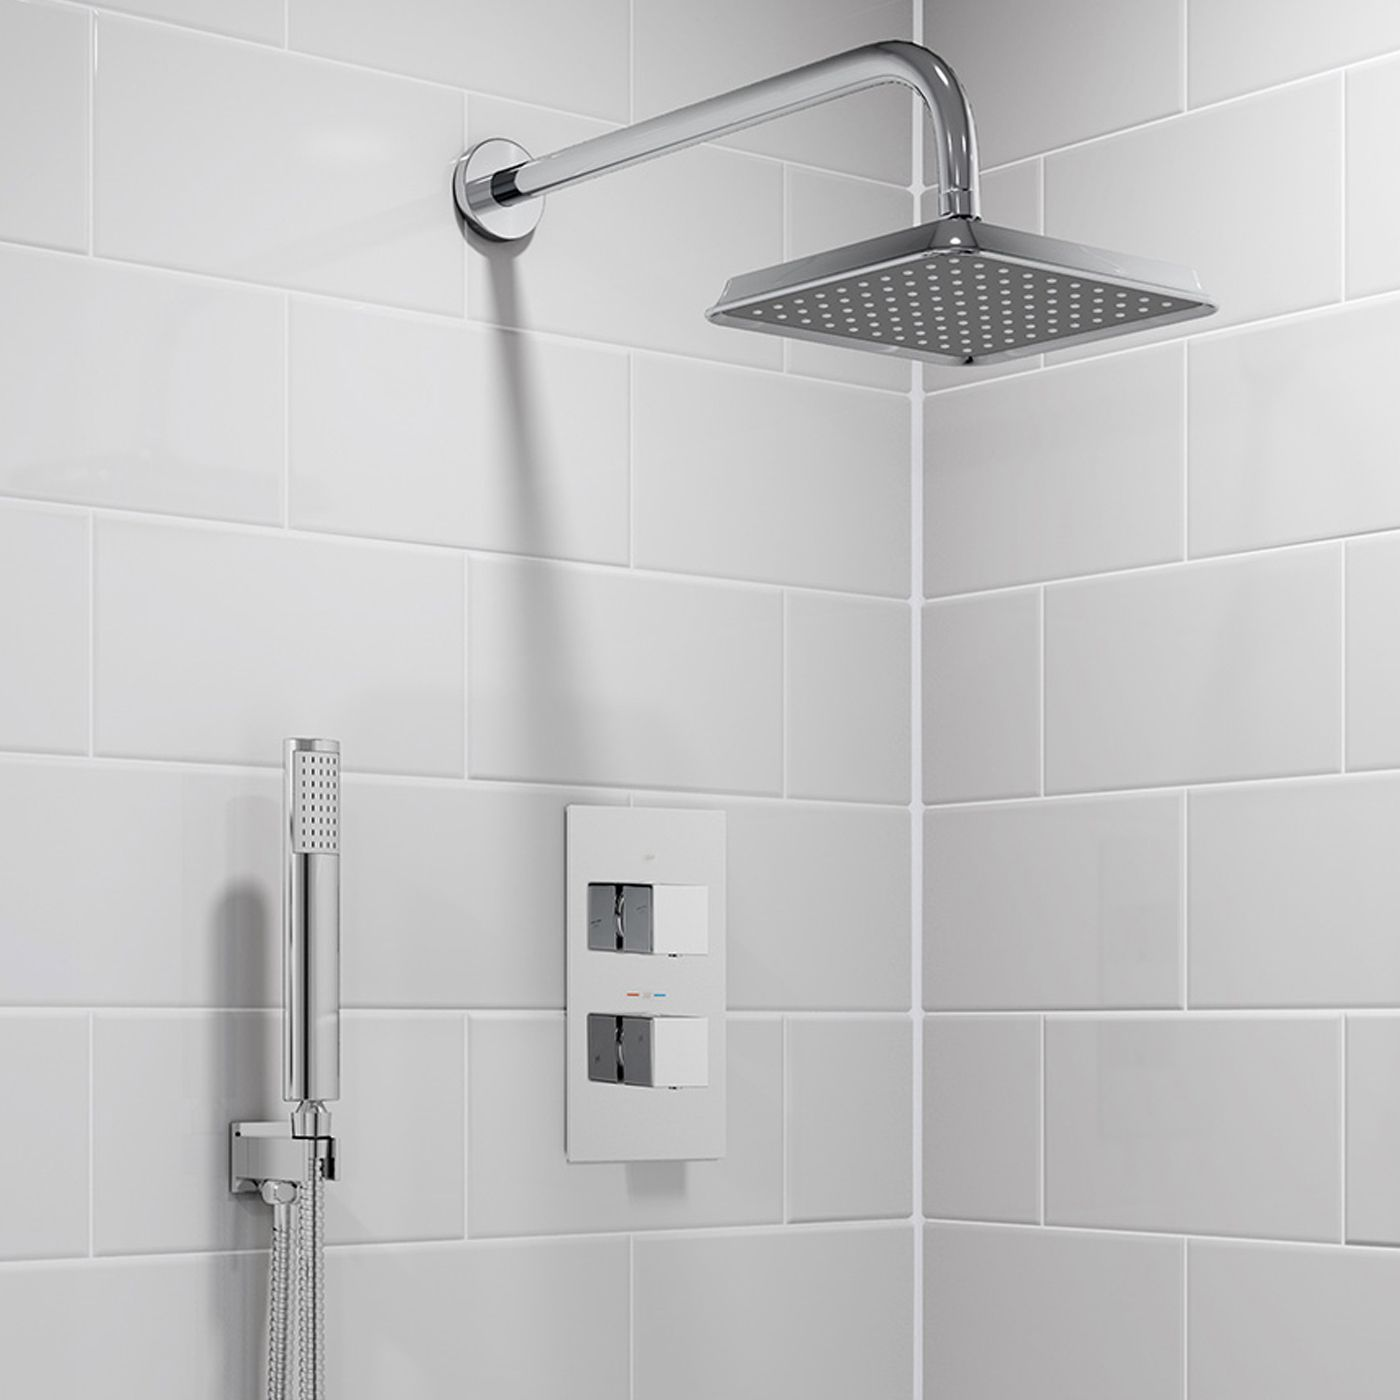 200mm Square Wall Mounted Head, Handheld & Thermostatic Mixer Shower ...